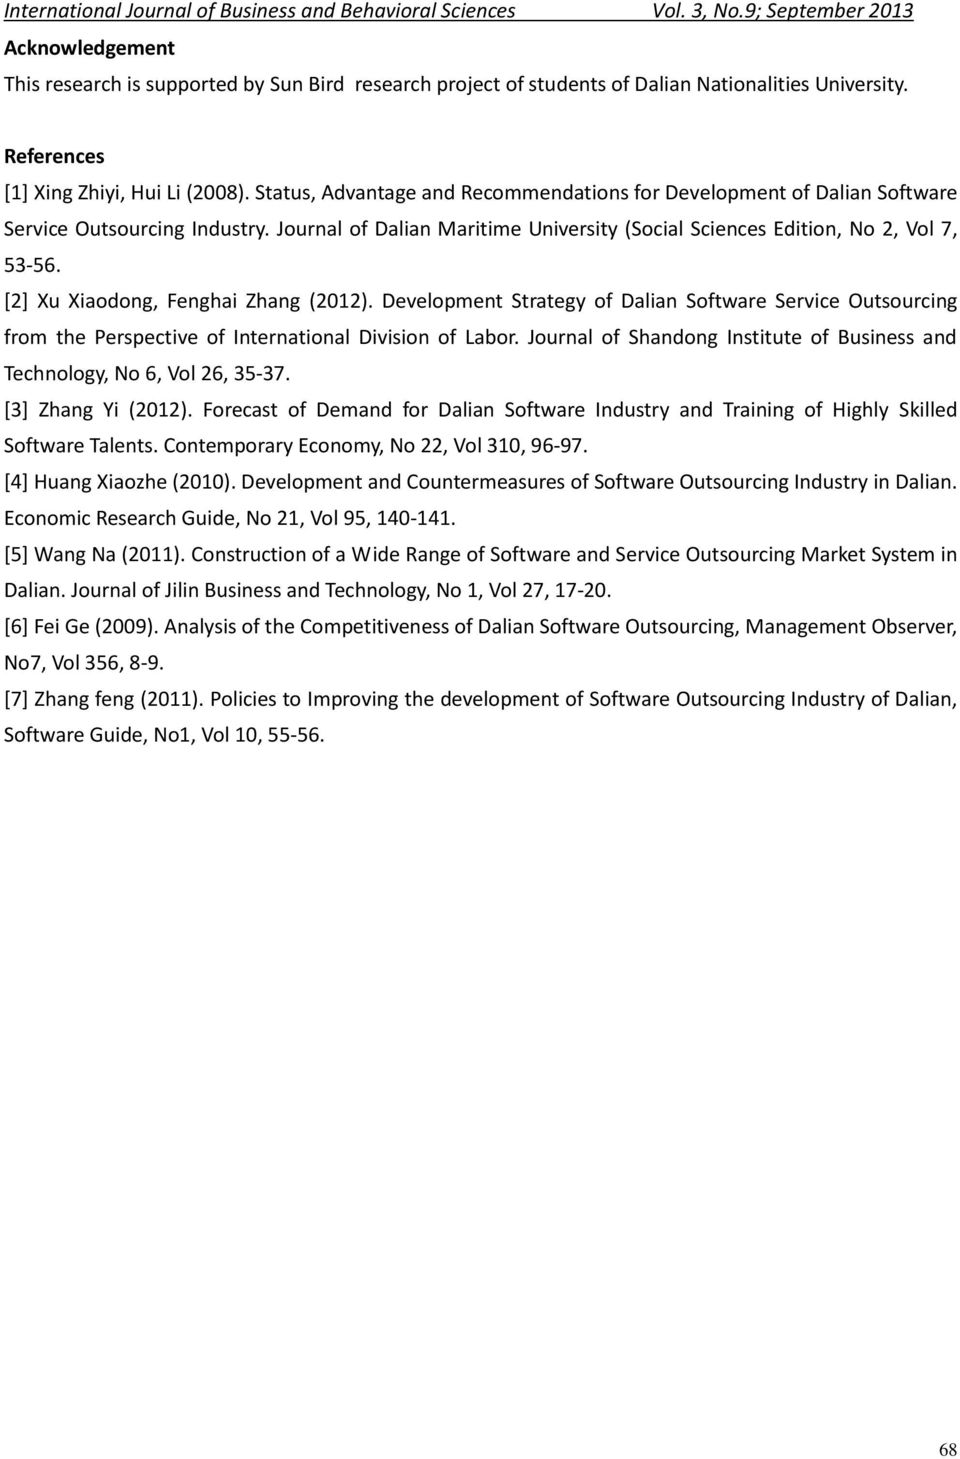 [2] Xu Xiaodong, Fenghai Zhang (2012). Development Strategy of Dalian Software Service Outsourcing from the Perspective of International Division of Labor.